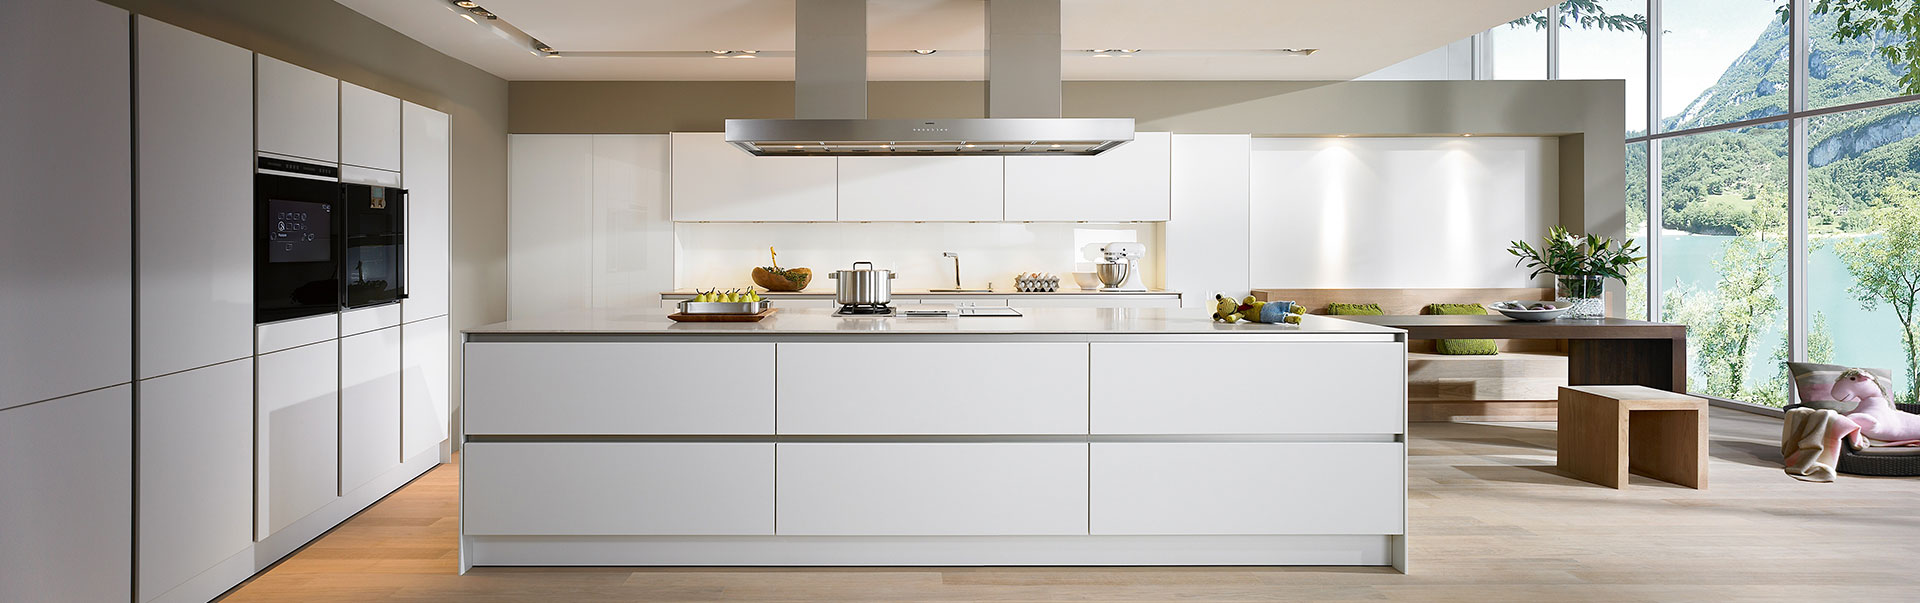 pure kitchens kitchen design manufacture hamilton